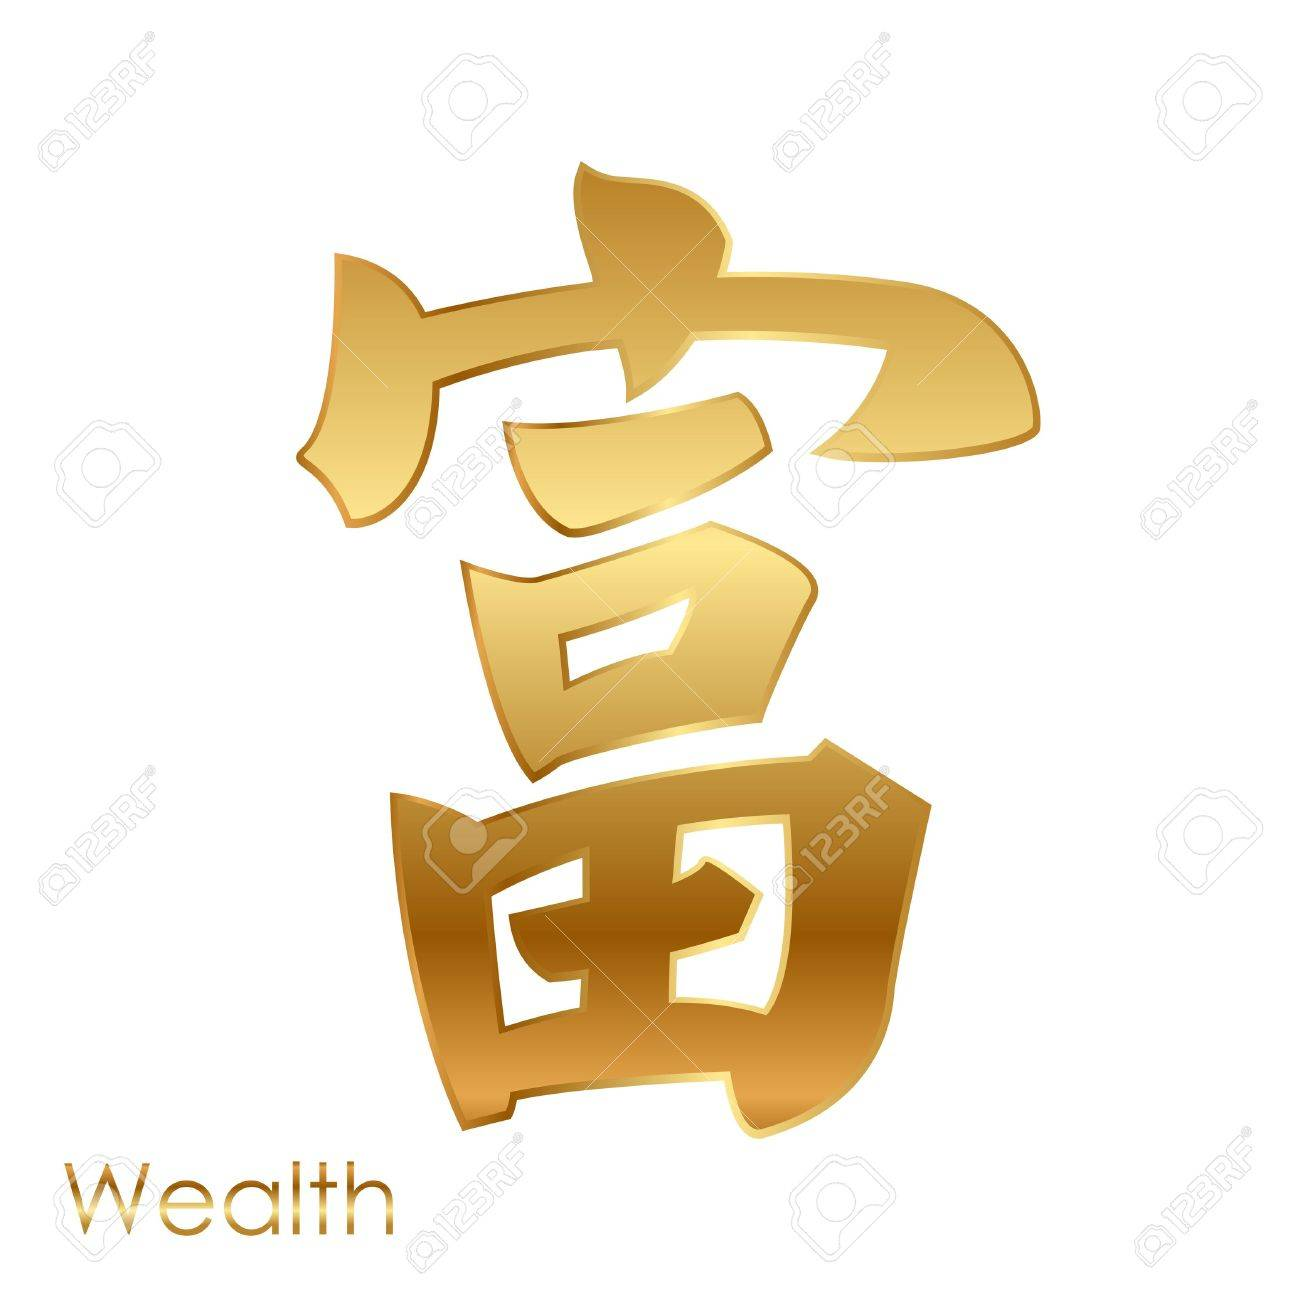 chinese character of good fortune Feng Shui - 16196123